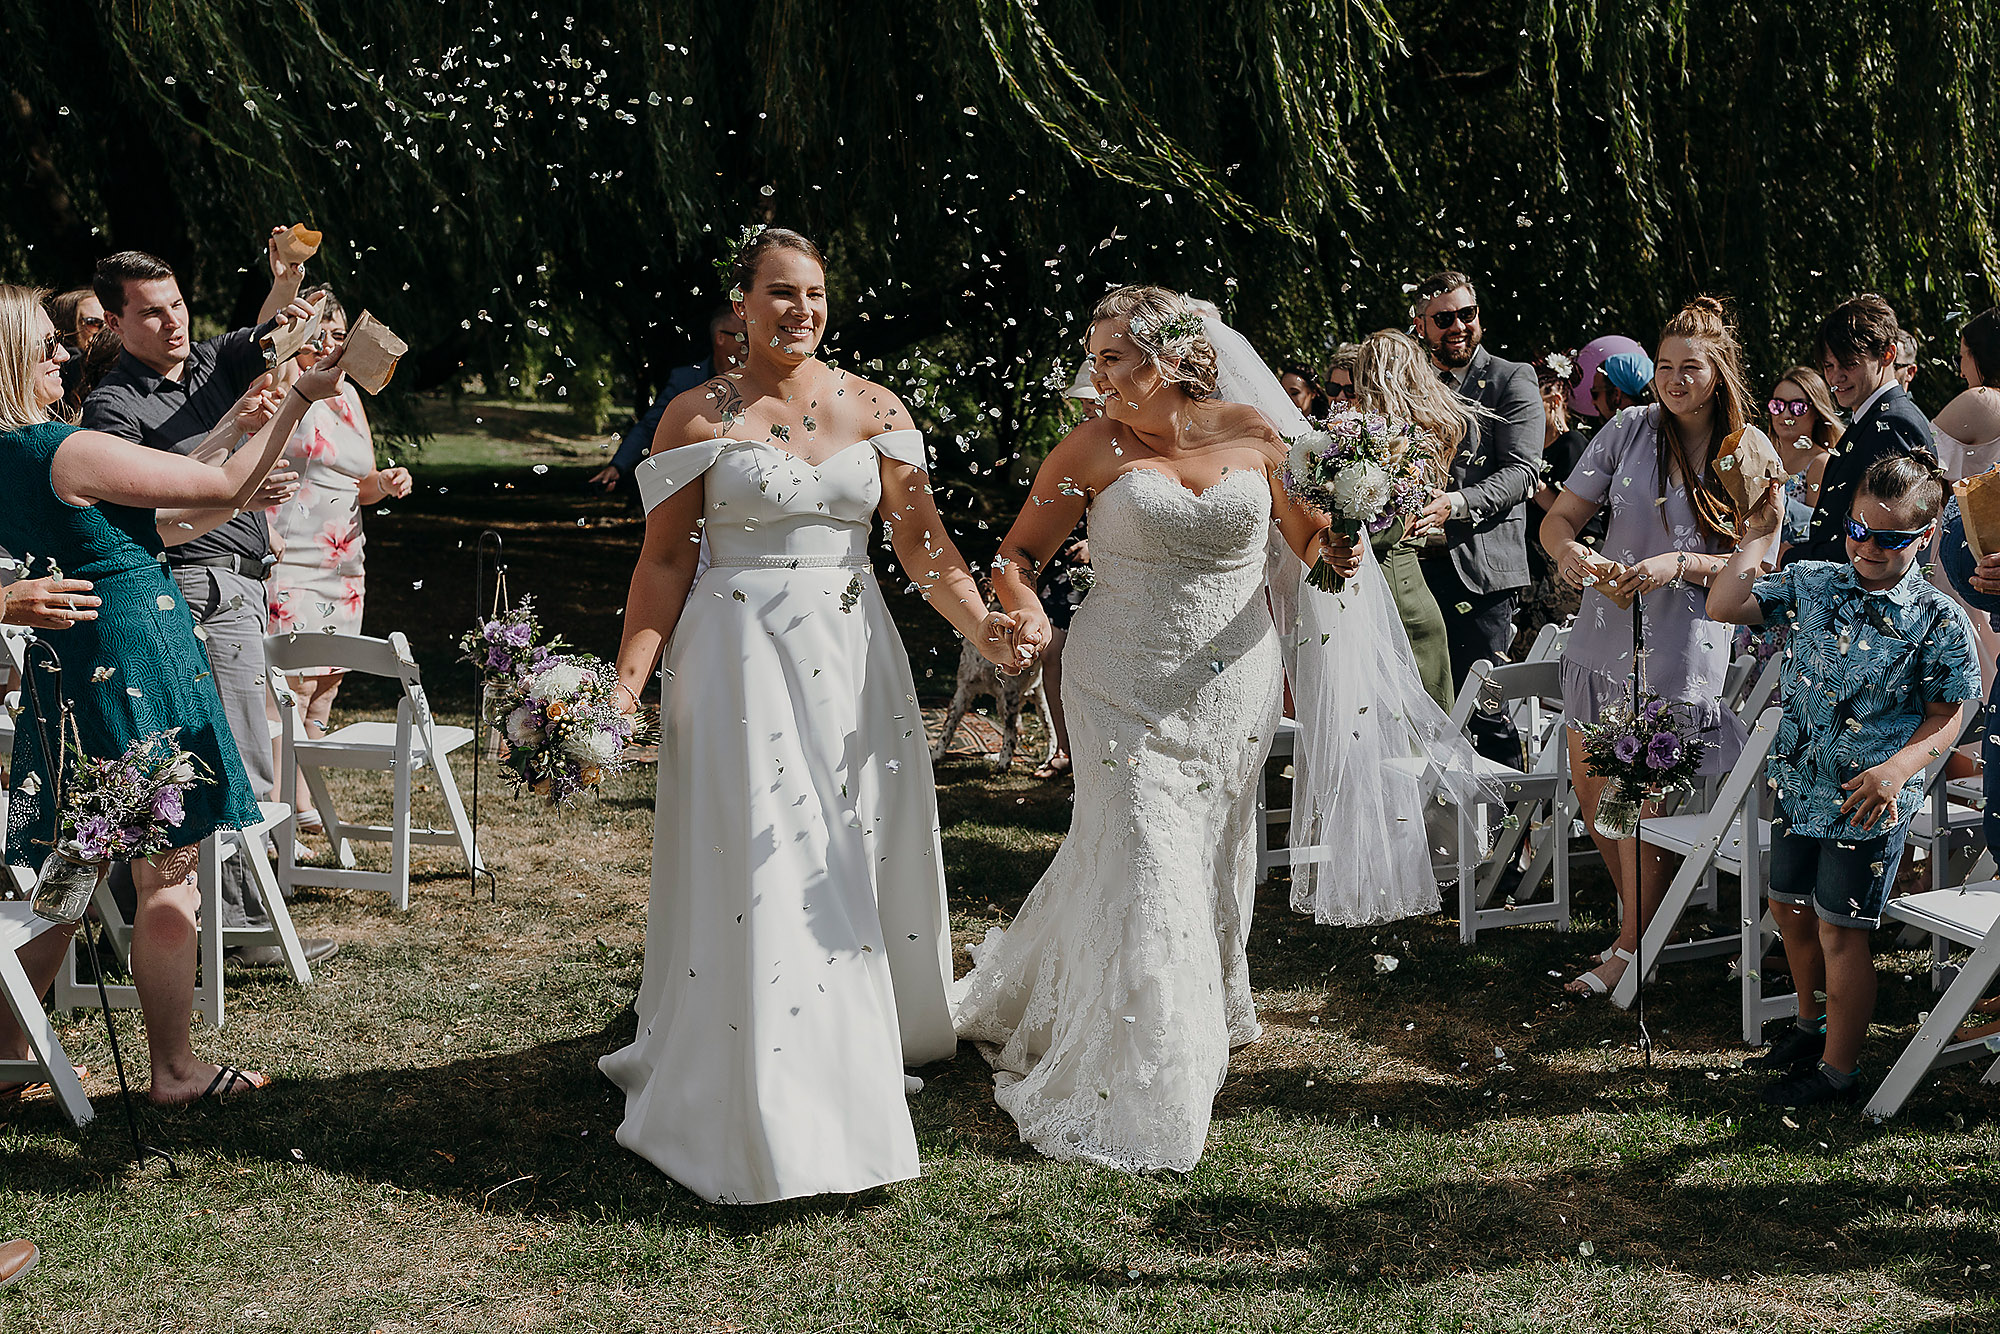 bride and bride walking down aisle with petals confetti just married lesbian wedding christchurch wedding photographer